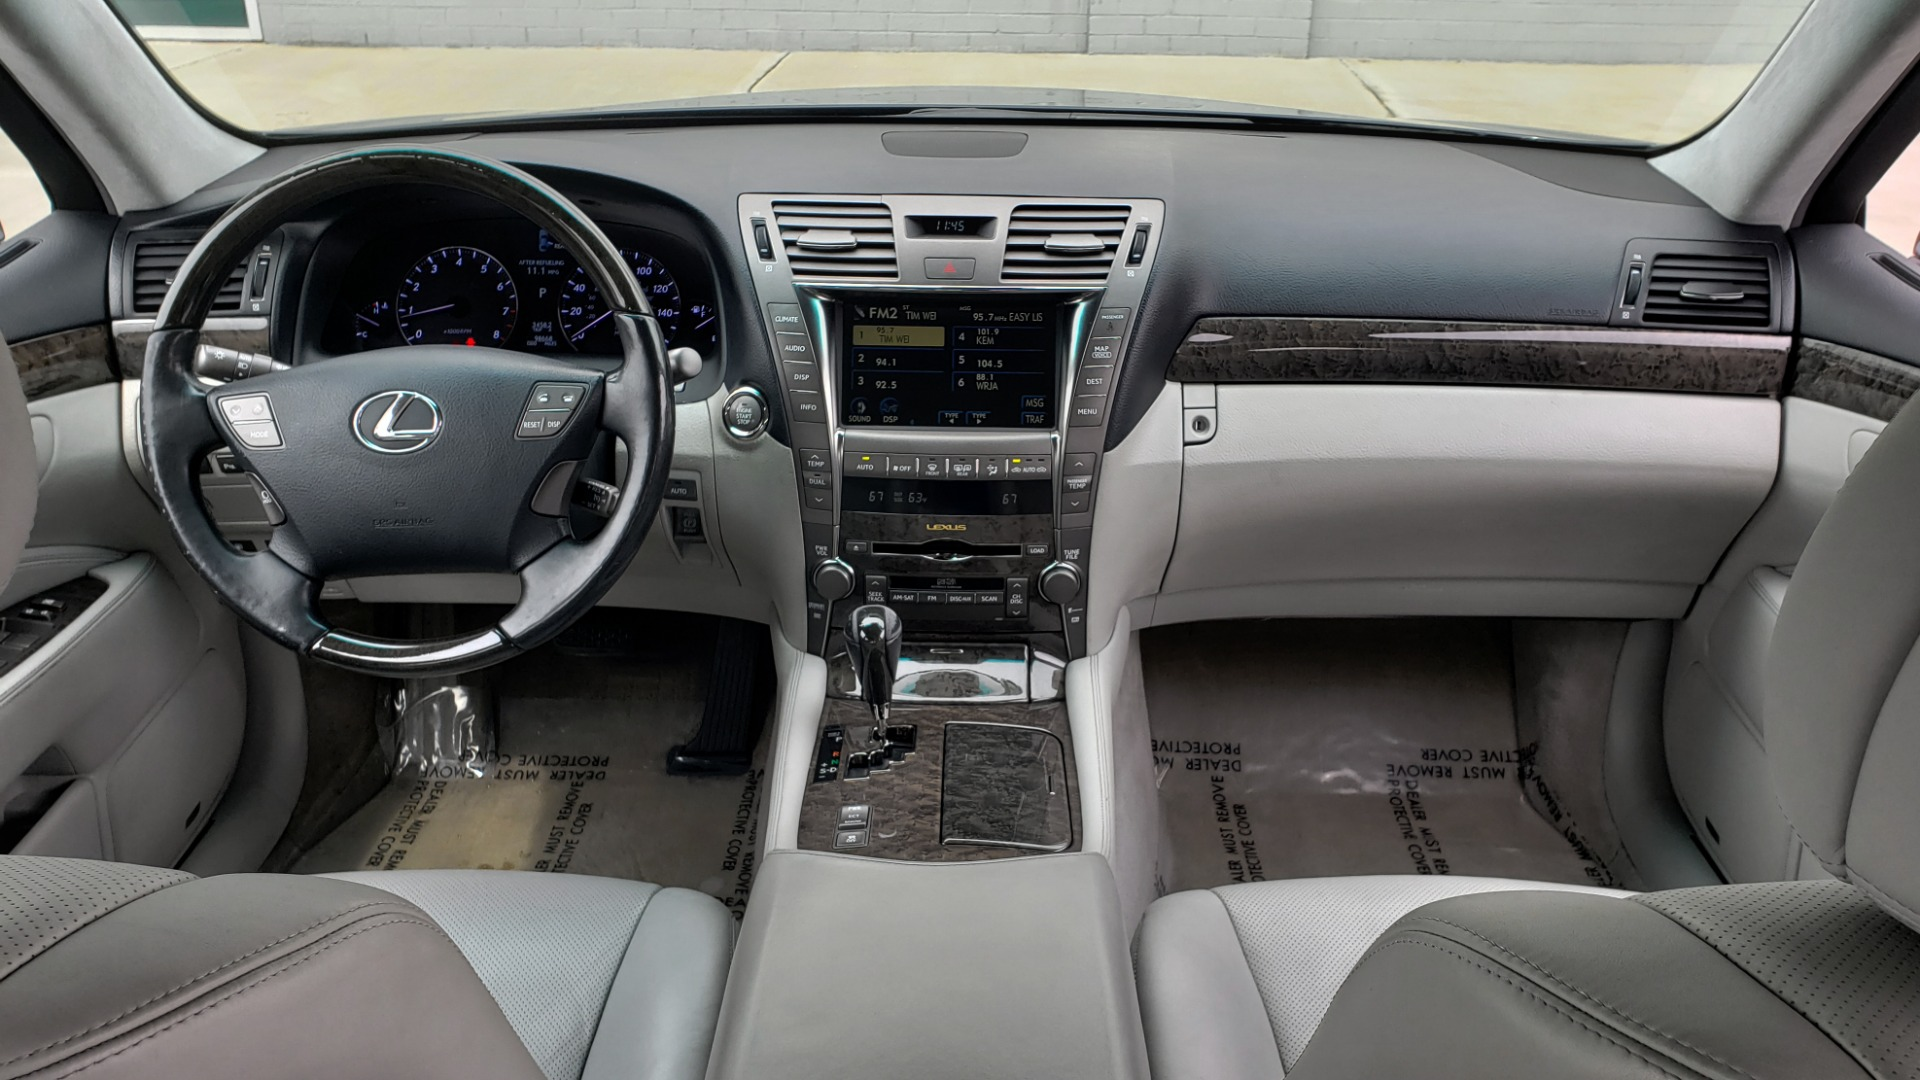 Used 2008 Lexus LS 460 LWB LUXURY SEDAN / MARK LEVINSON / INT PARK ASST / REARVIEW for sale Sold at Formula Imports in Charlotte NC 28227 77